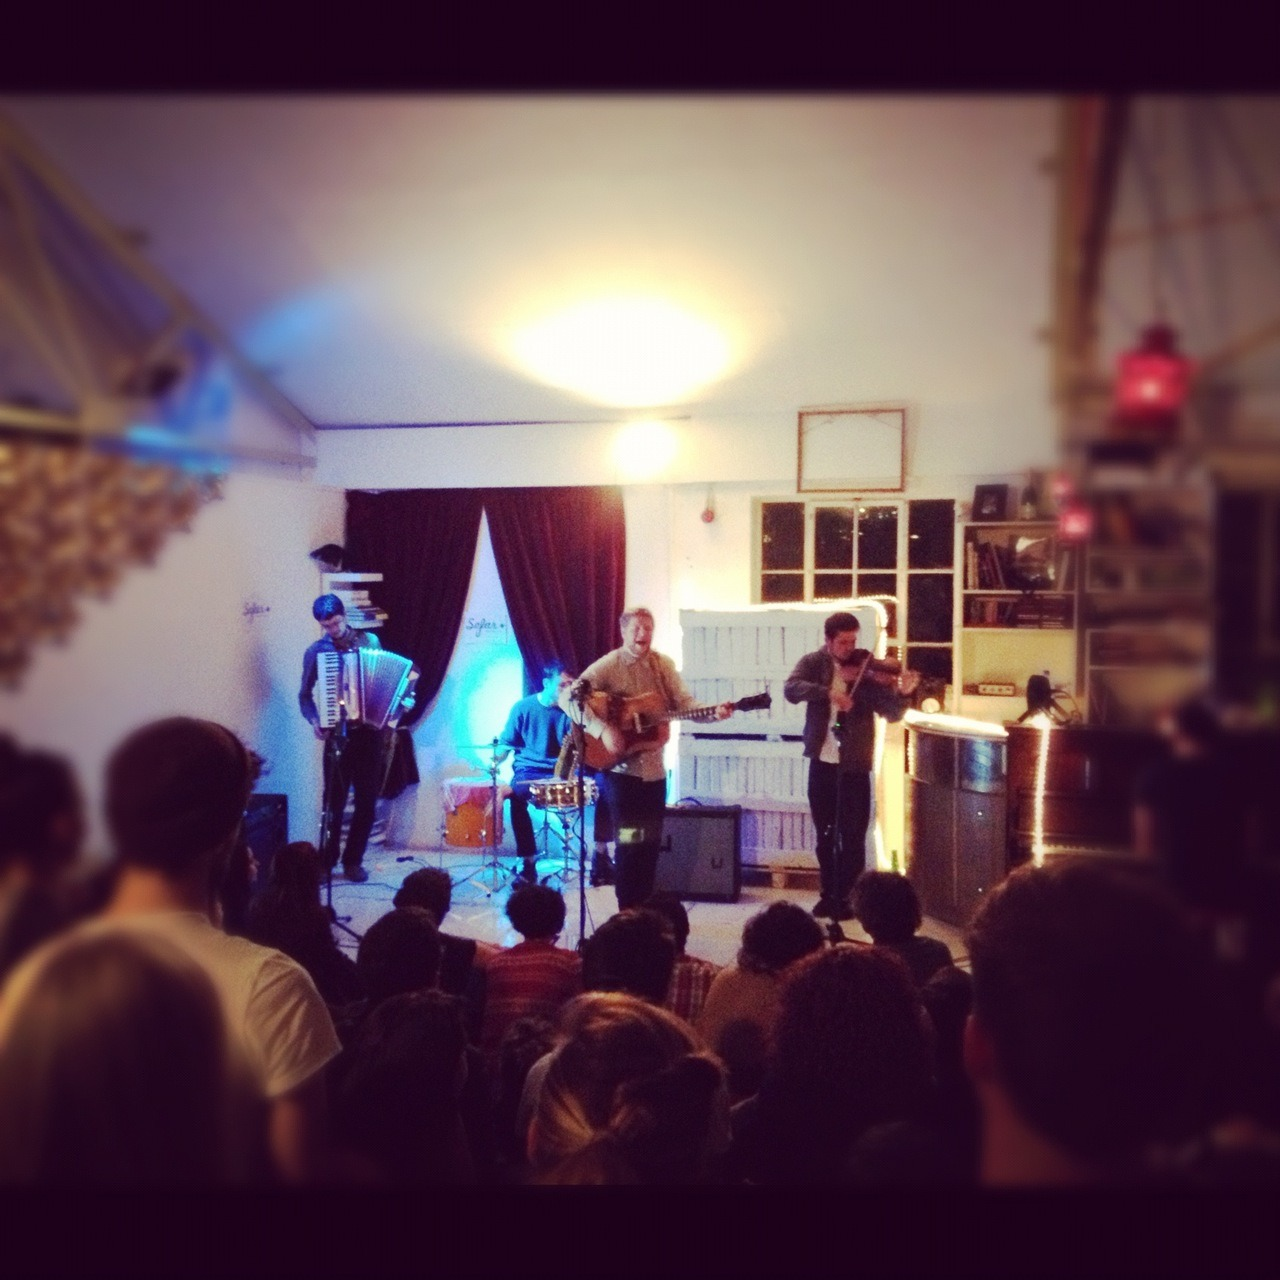 Dancing Years at Sofar Sounds in London 13/11/2012. Organisers have announced another London gig for November 22nd. Westminster University students have the chance of getting guaranteed tickets to the often over subscribed event. All you need to do is sign up to their mailing list and when a gig you want to be at is announced email londonsofar@gmail.com with the subjet 'Westminster'. It's first come first serve so get in there quick!